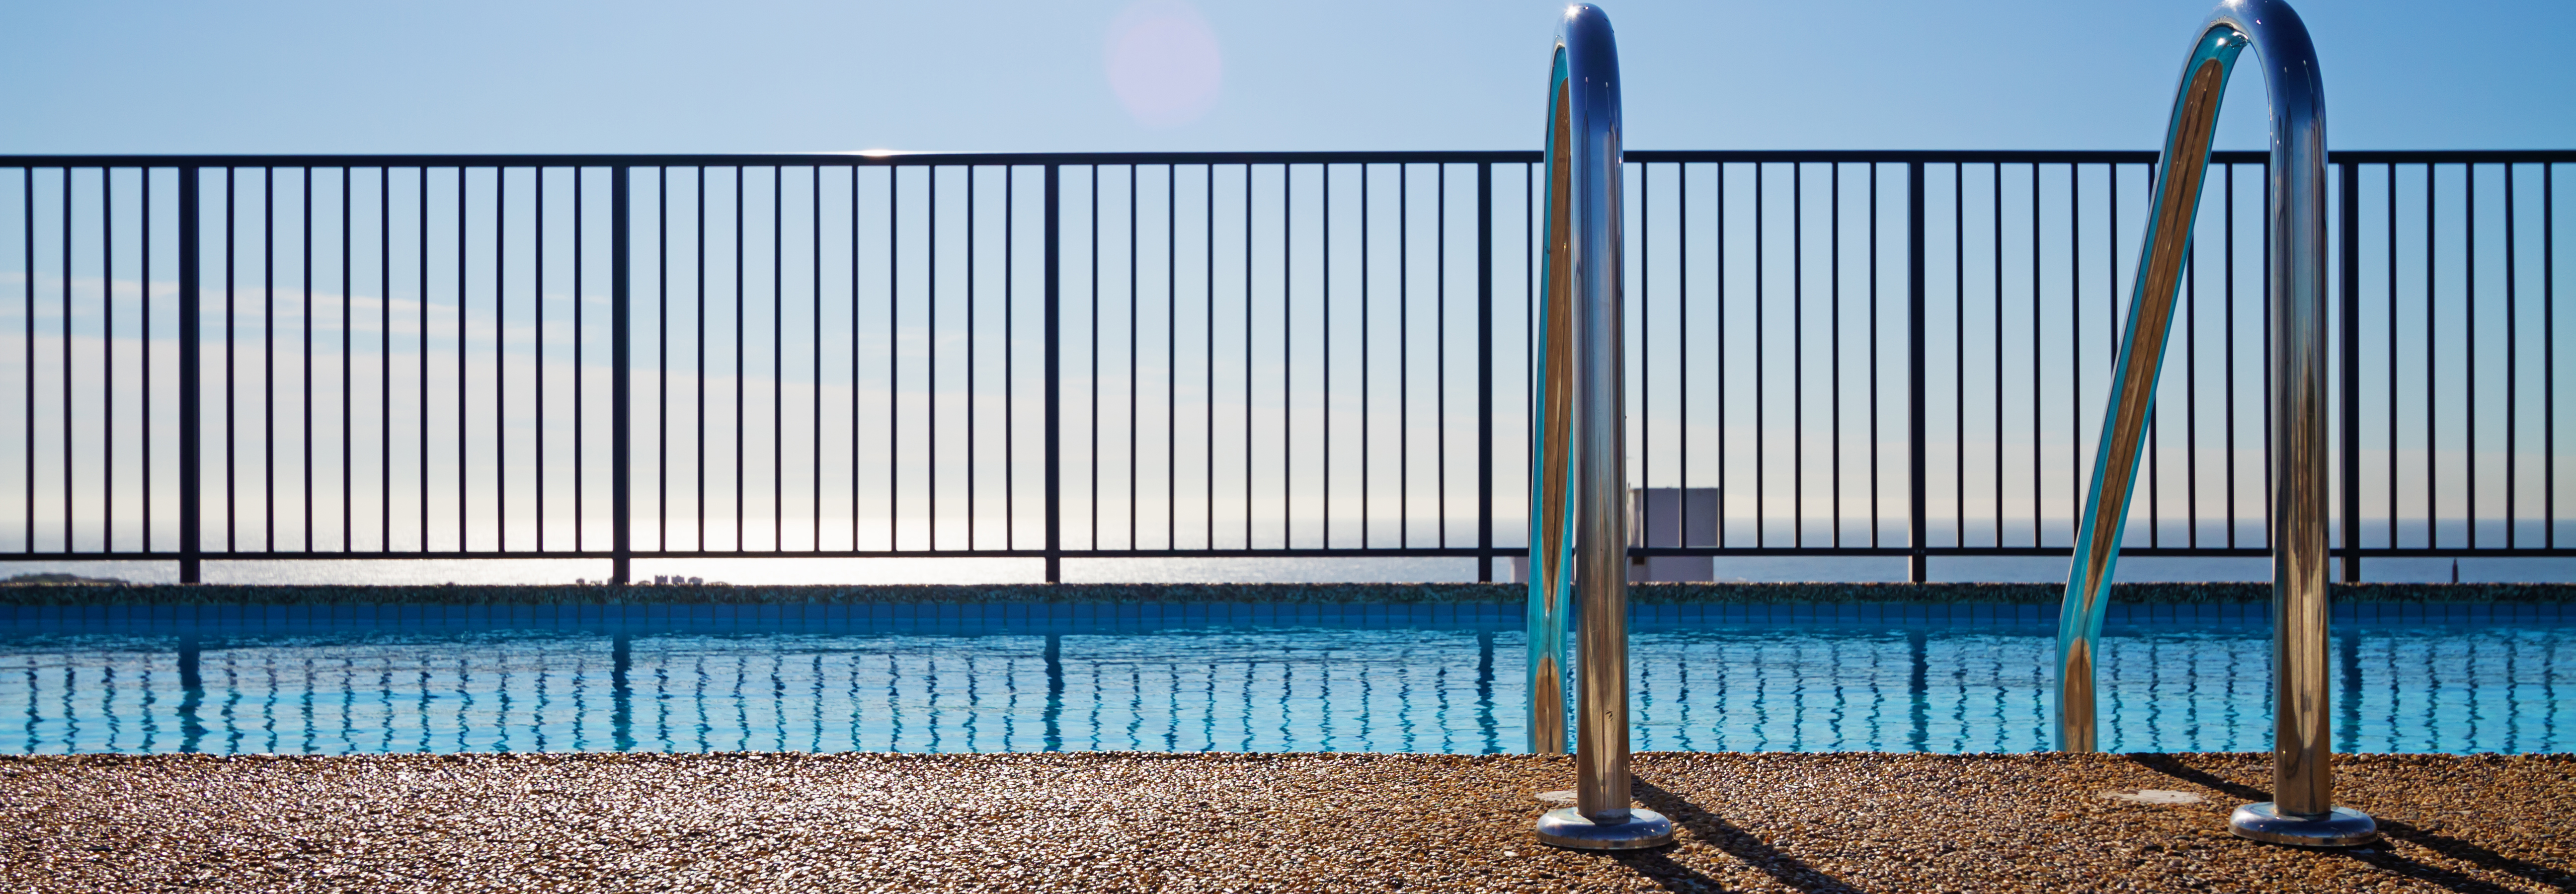 istock-swimming pool with fence